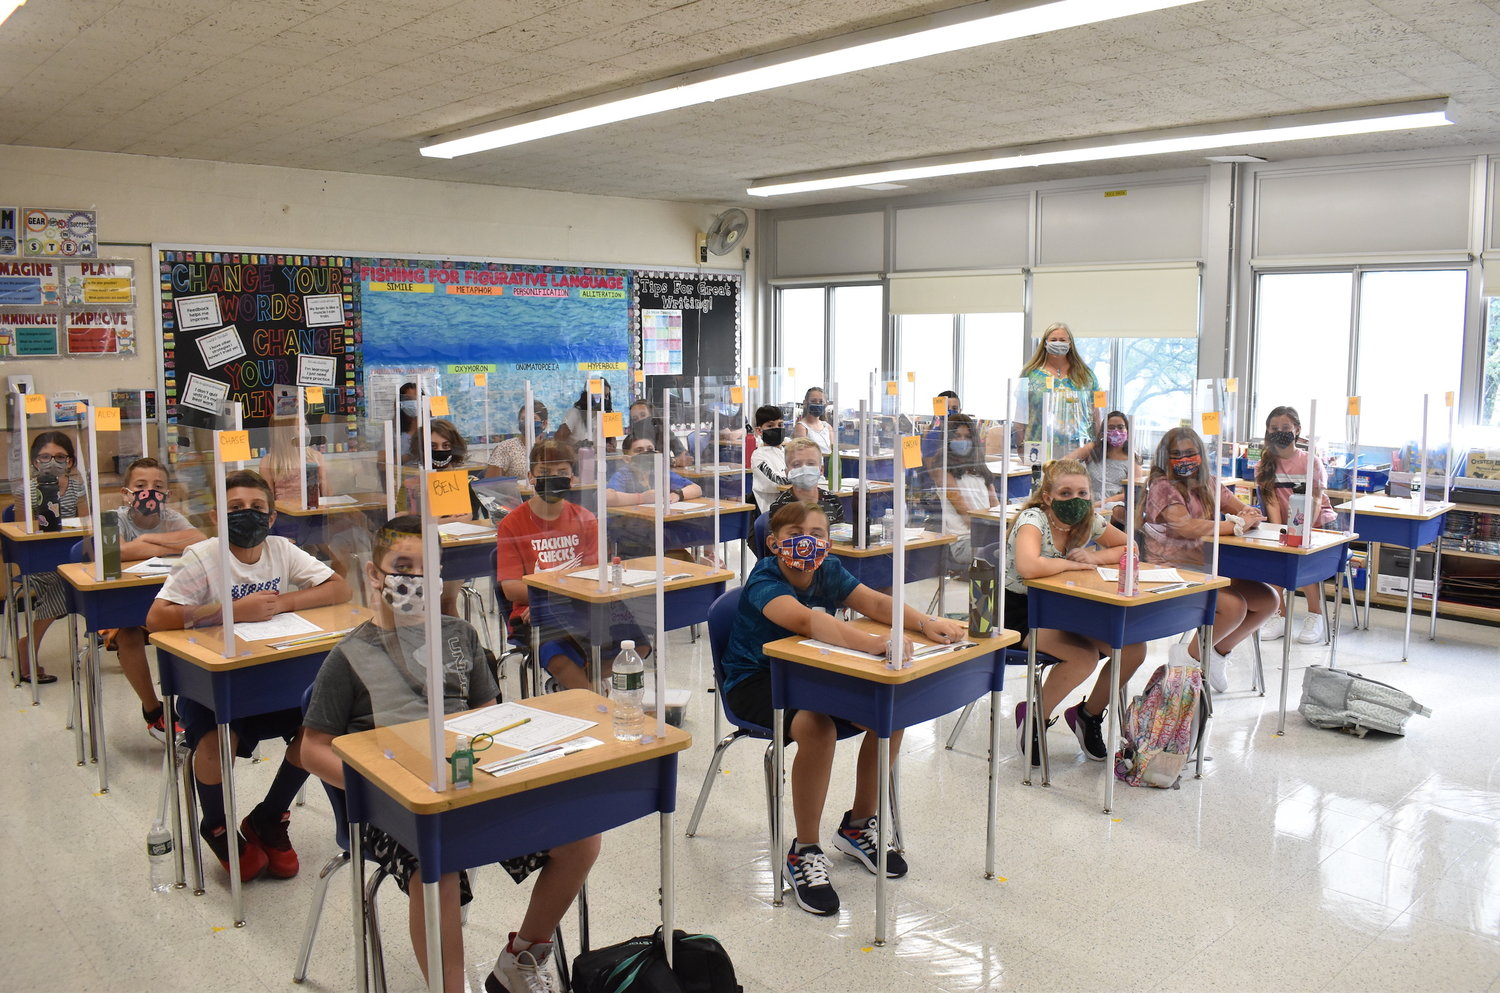 MaryAnn Gilroy's sixth graders were glad to be back, even with masks and desk barriers.